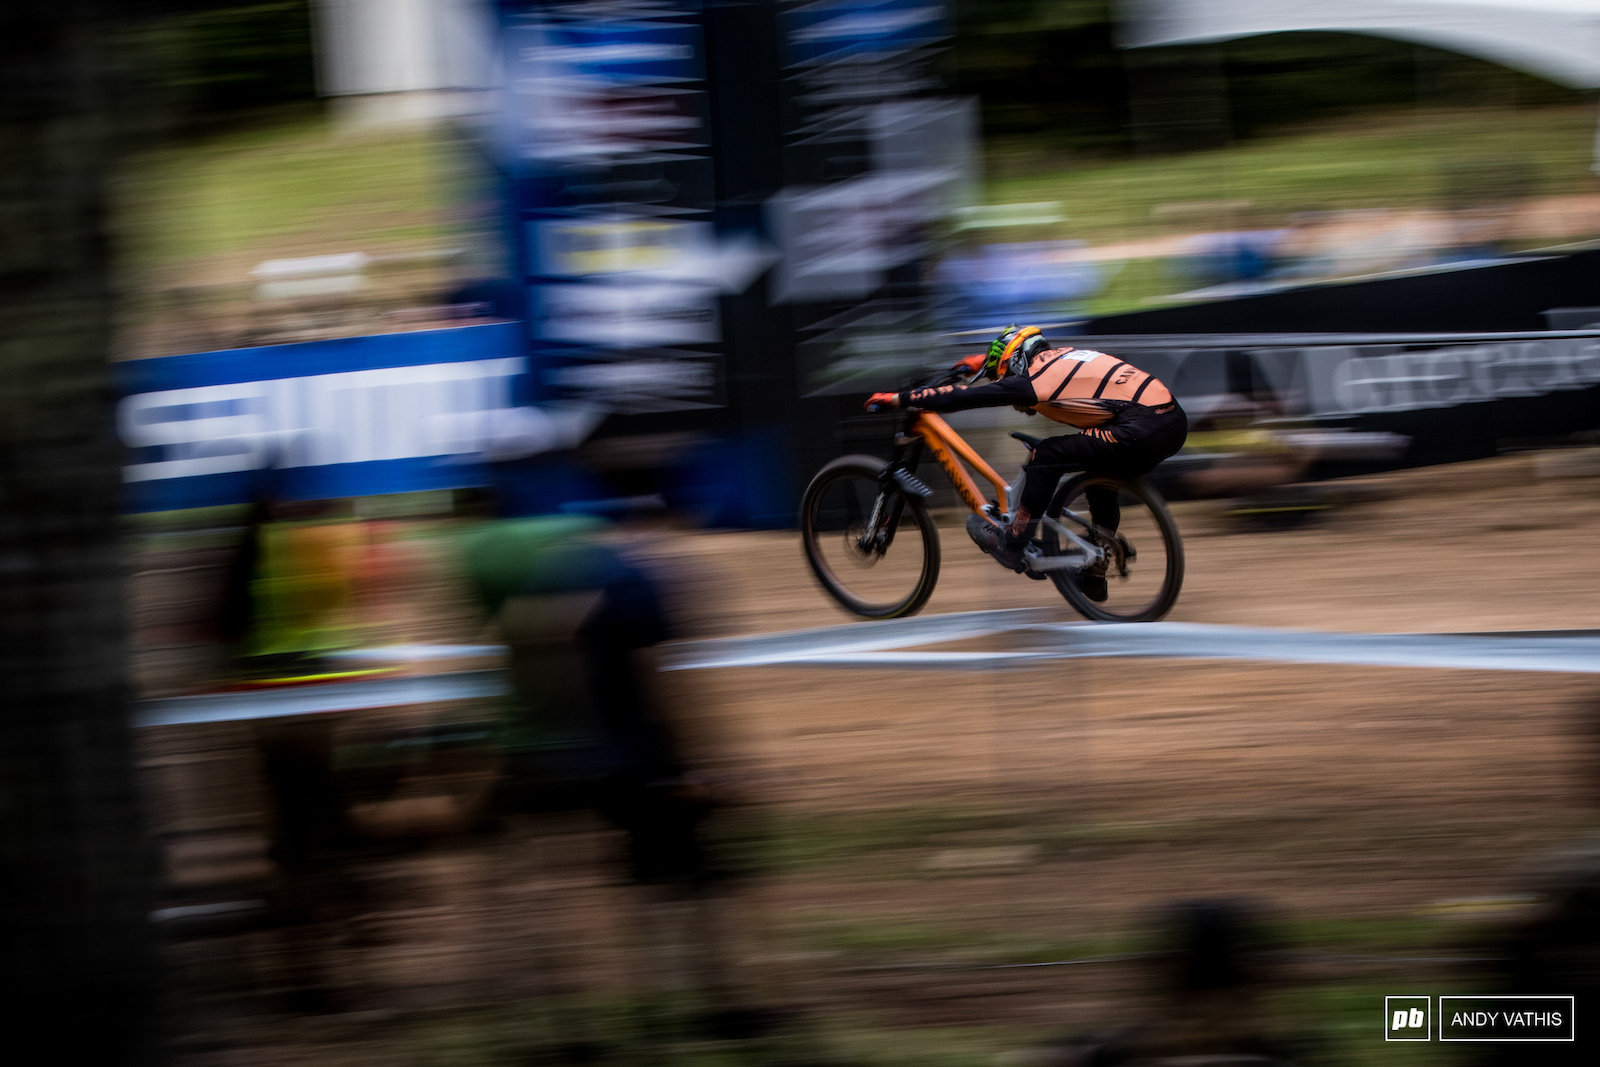 Mark Wallace pushing through the finish line and earned himself fifth. That s two podiums this year with one race left.